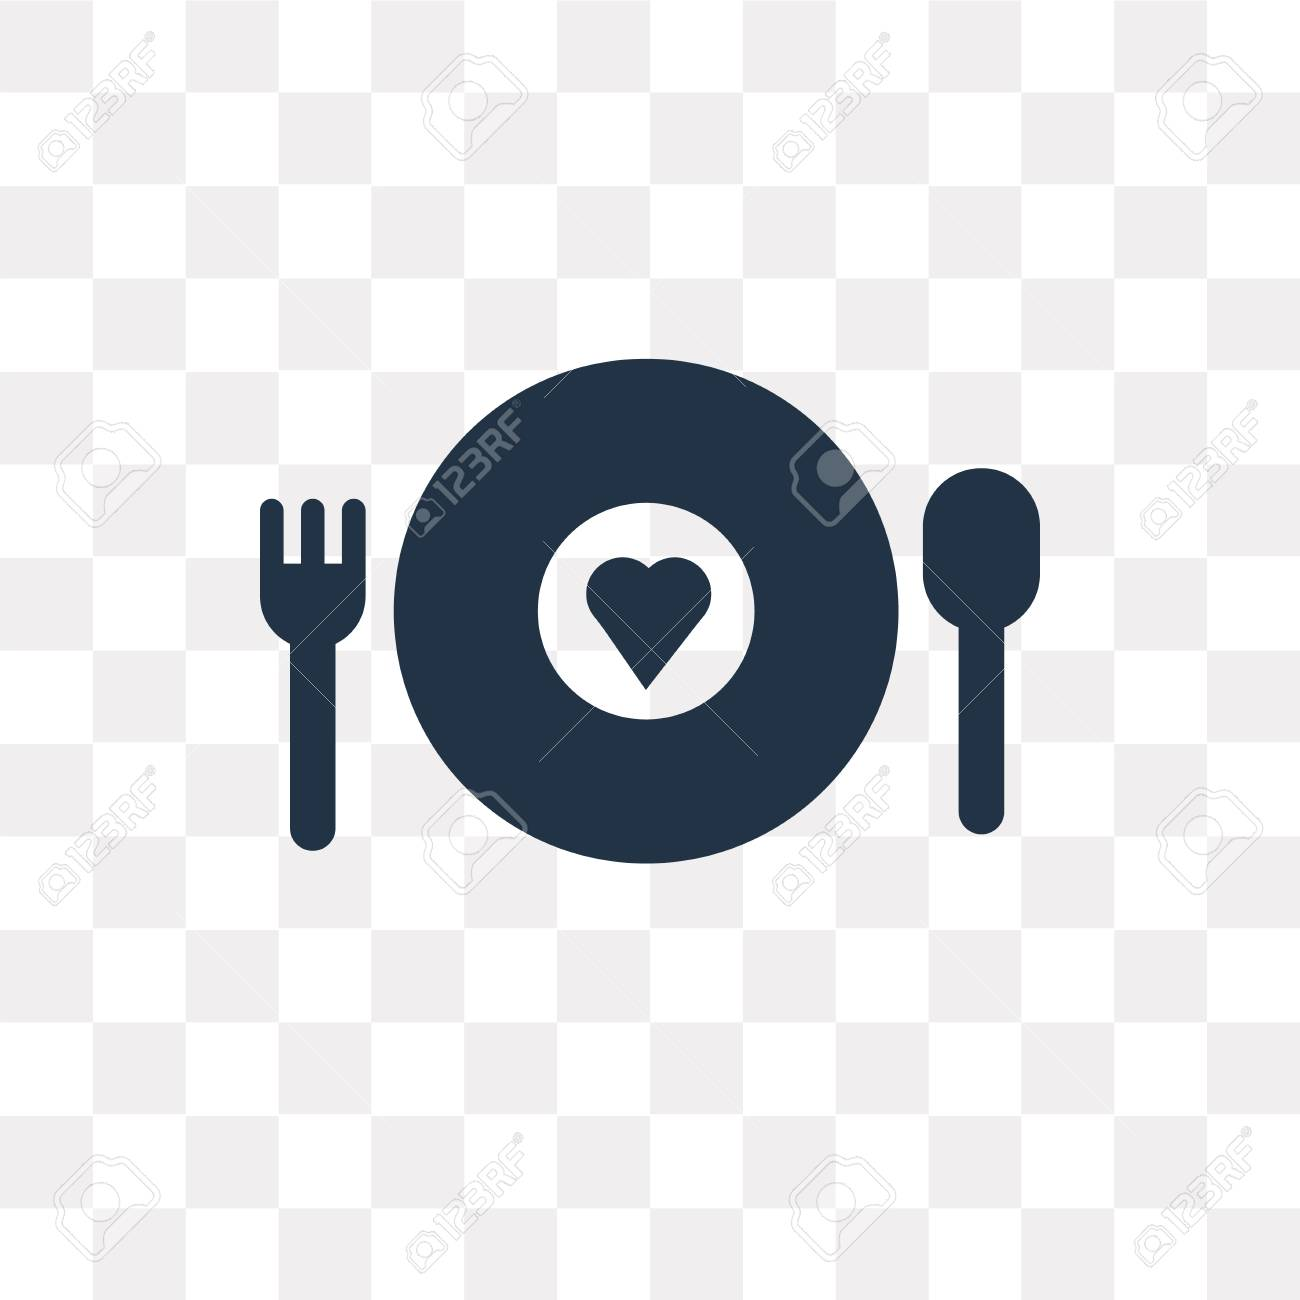 Charity Food vector icon isolated on transparent background,